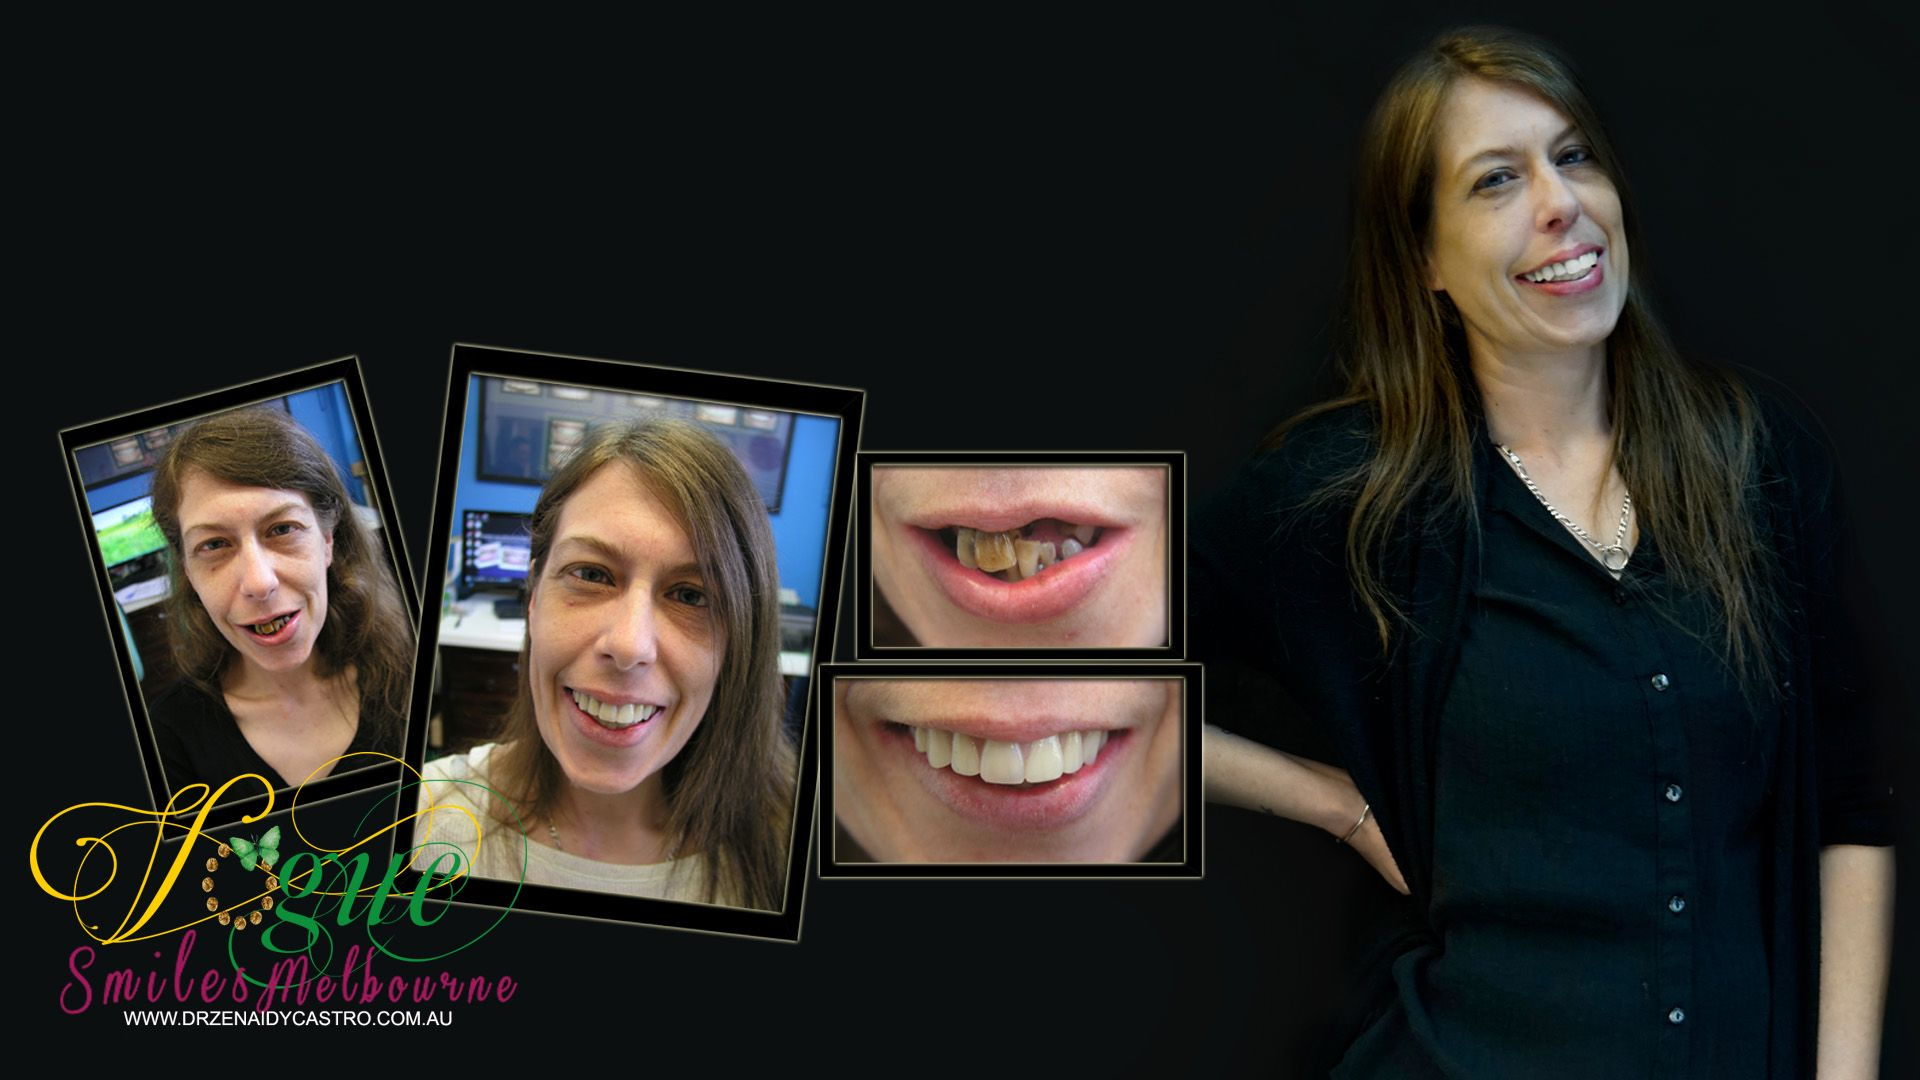 Tired of hiding your smile from others? Wish you could finally do something about your discolored, cracked, or missing teeth? Or, do you simply want to build upon your natural oral aesthetics? Vogue Smiles Melbourne can help you improve your smiles. https://heartandsoulwhisperer.com.au/the-artist/, http://drzenaidycastro.com.au/, http://melbournecosmeticdentistry.com.au/, /, https://heartandsoulwhisperer.com.au